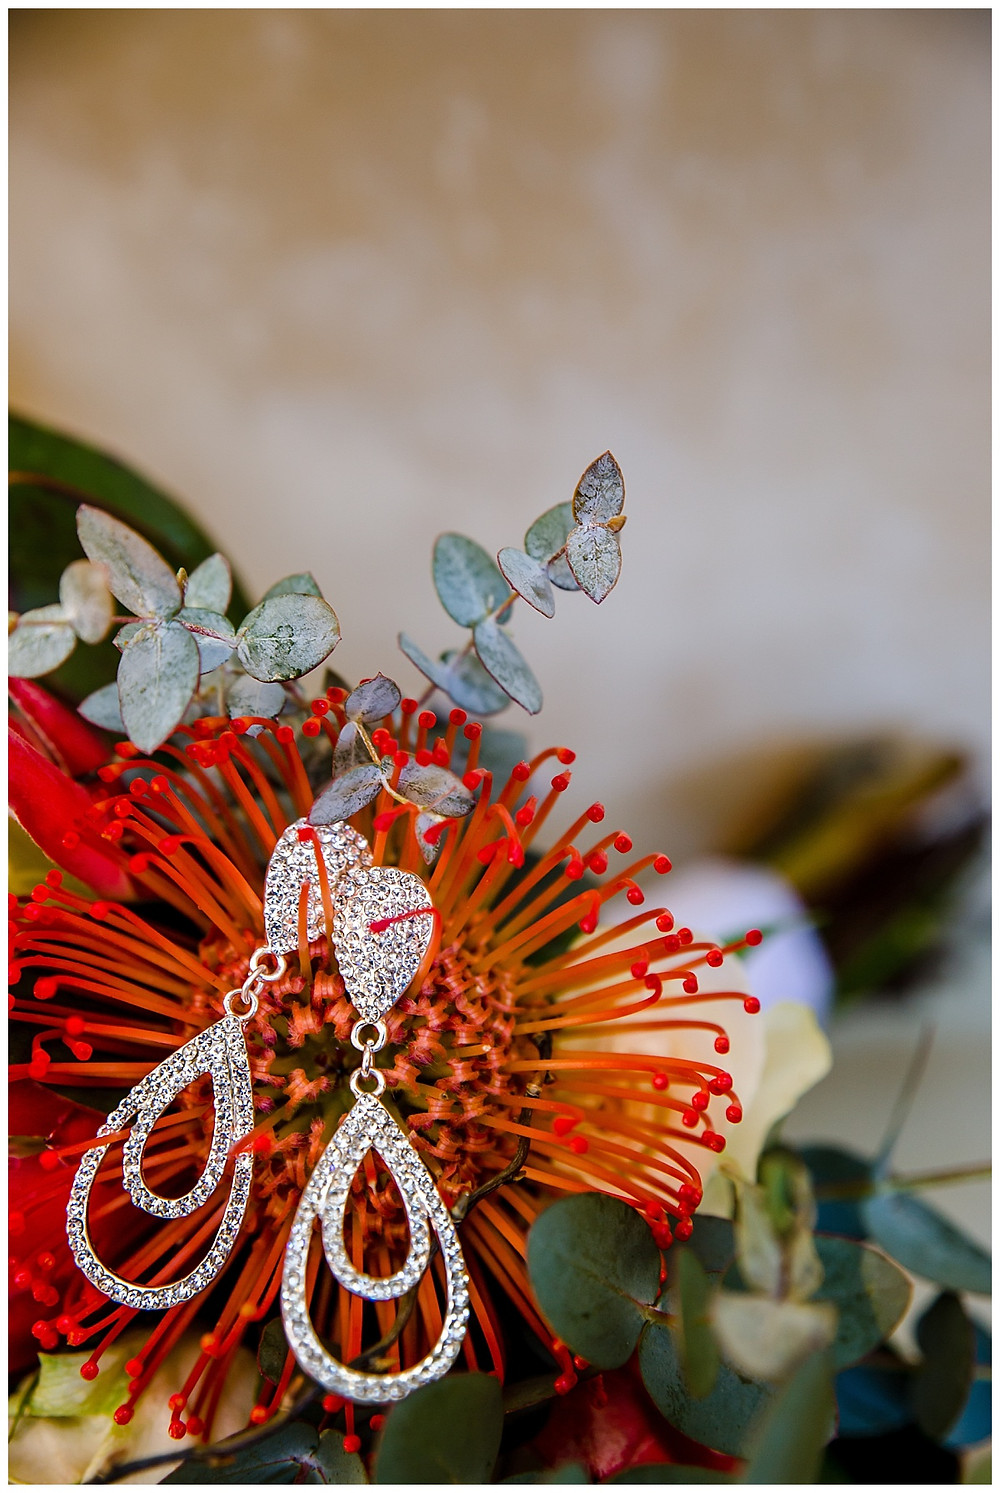 Wedding at Welgelee Cape Town by Jaqui Franco Photography